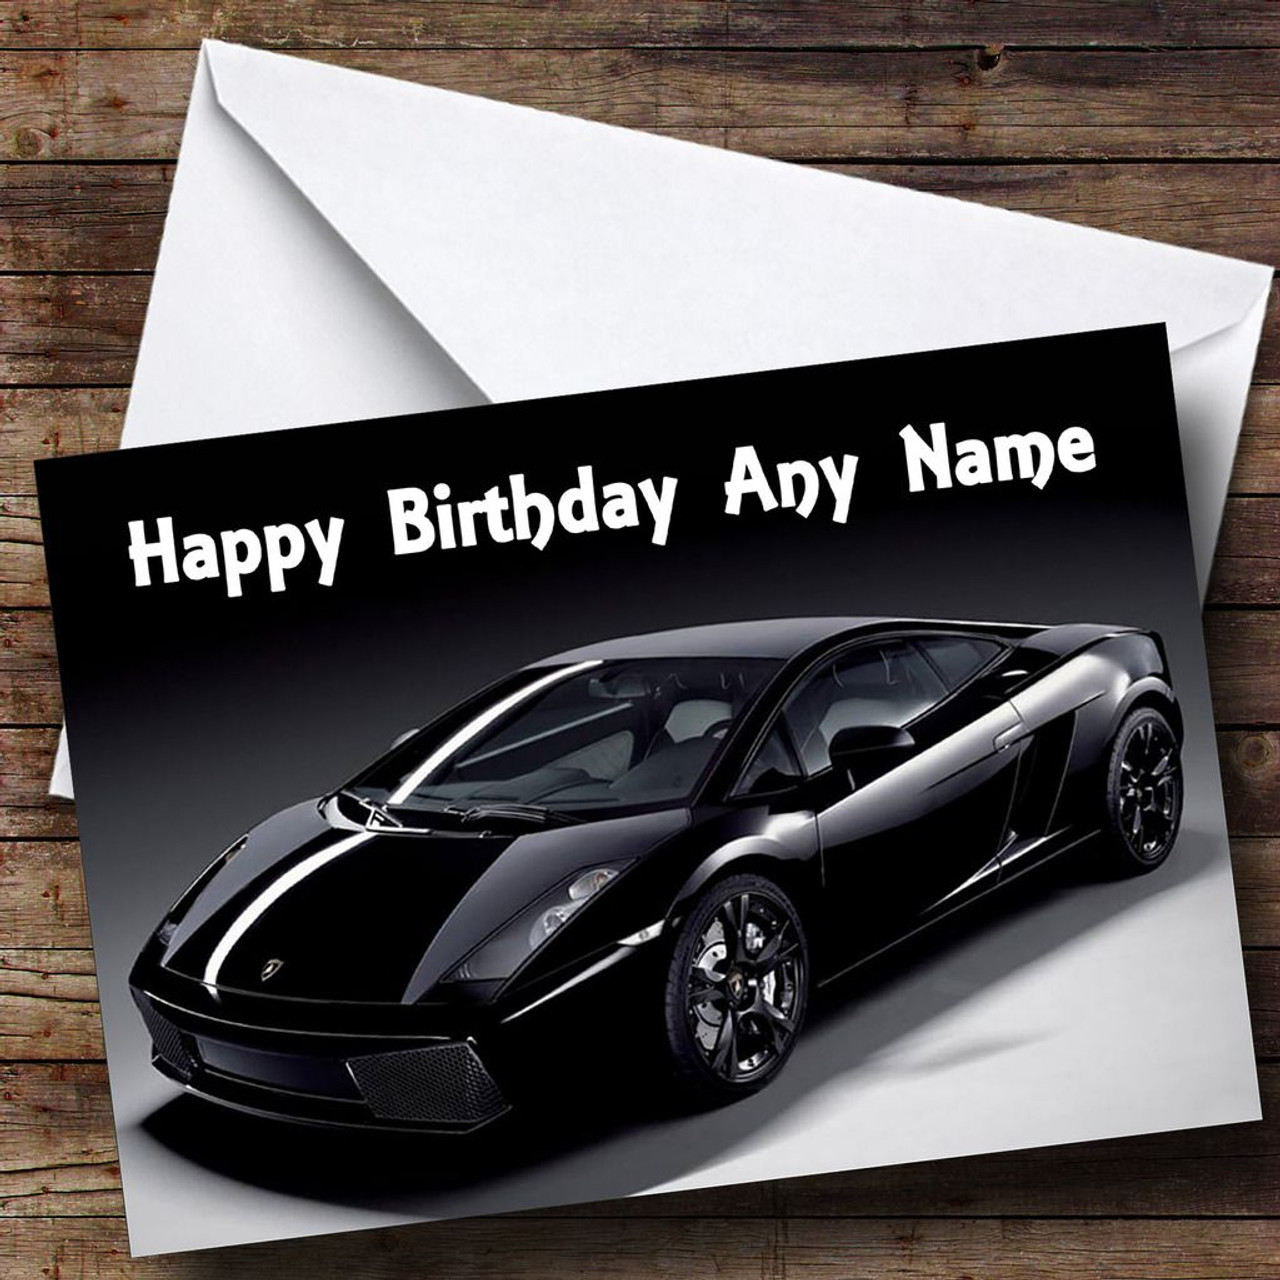 Black Lamborghini Gallardo Personalised Birthday Card